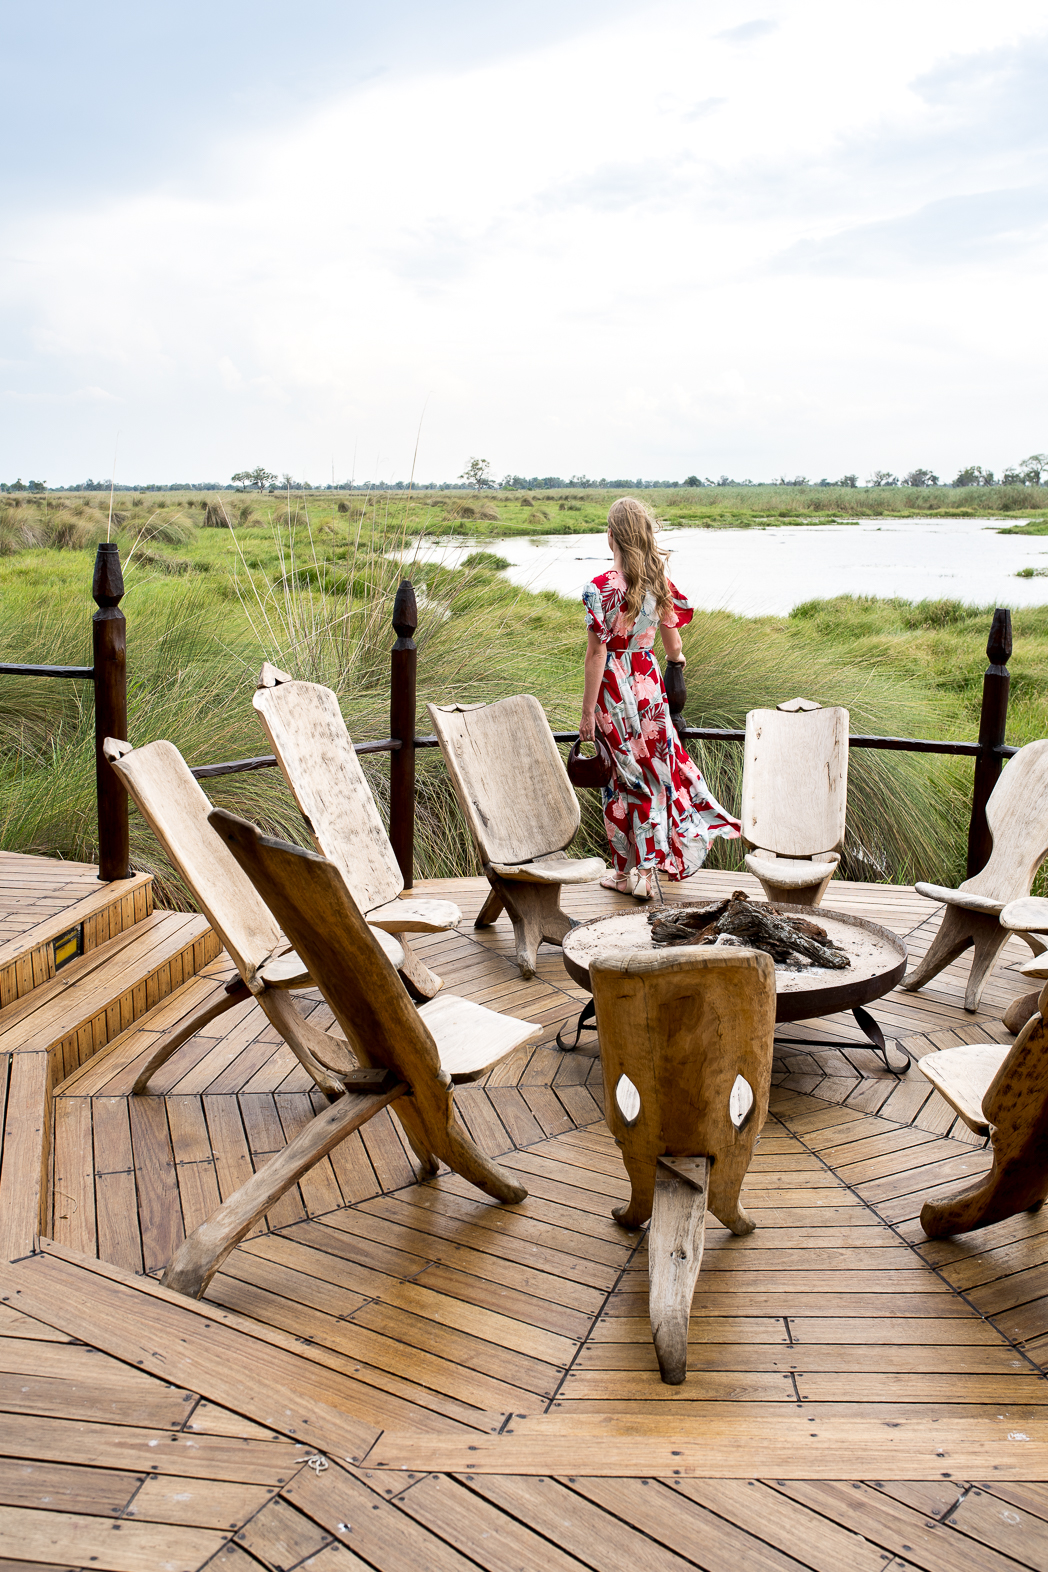 Stacie Flinner x Sanctuary Retreats Baines Camp Botswana-35.jpg